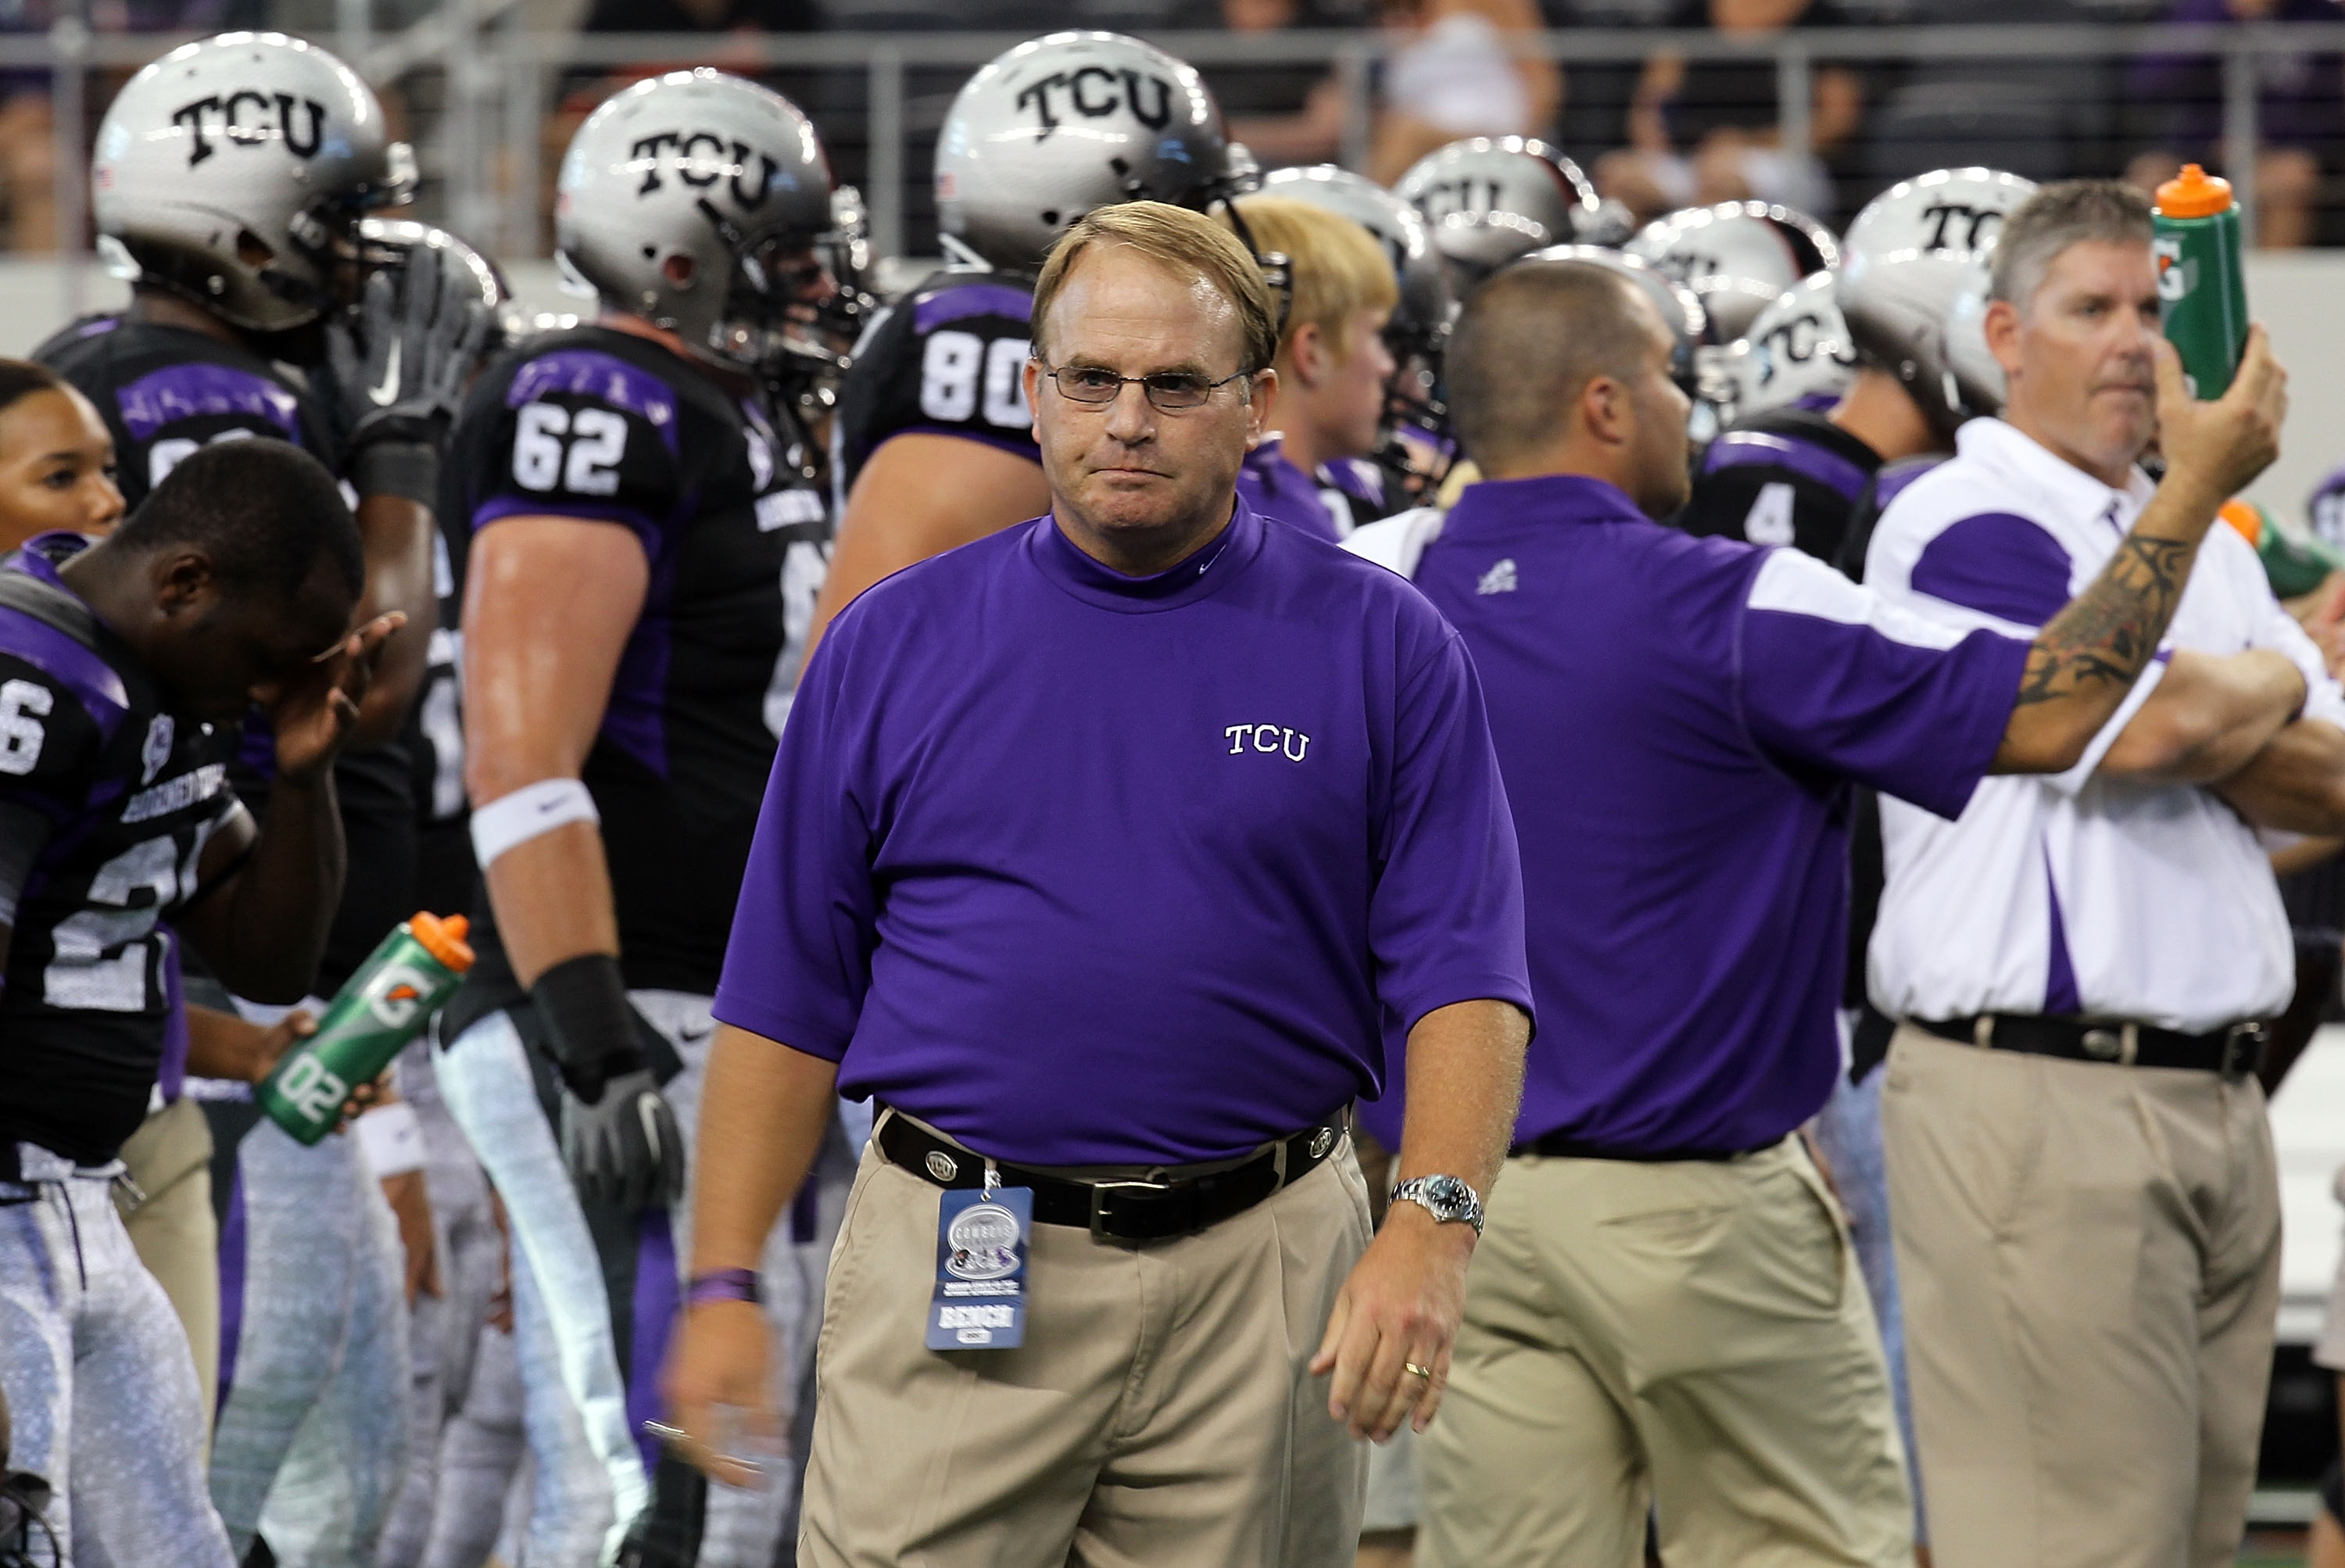 ARLINGTON, TX - SEPTEMBER 04:  Head coach Gary Patterson of the TCU Horned Frogs walks on the field before a game against the Oregon State Beavers at Cowboys Stadium on September 4, 2010 in Arlington, Texas.  (Photo by Ronald Martinez/Getty Images)